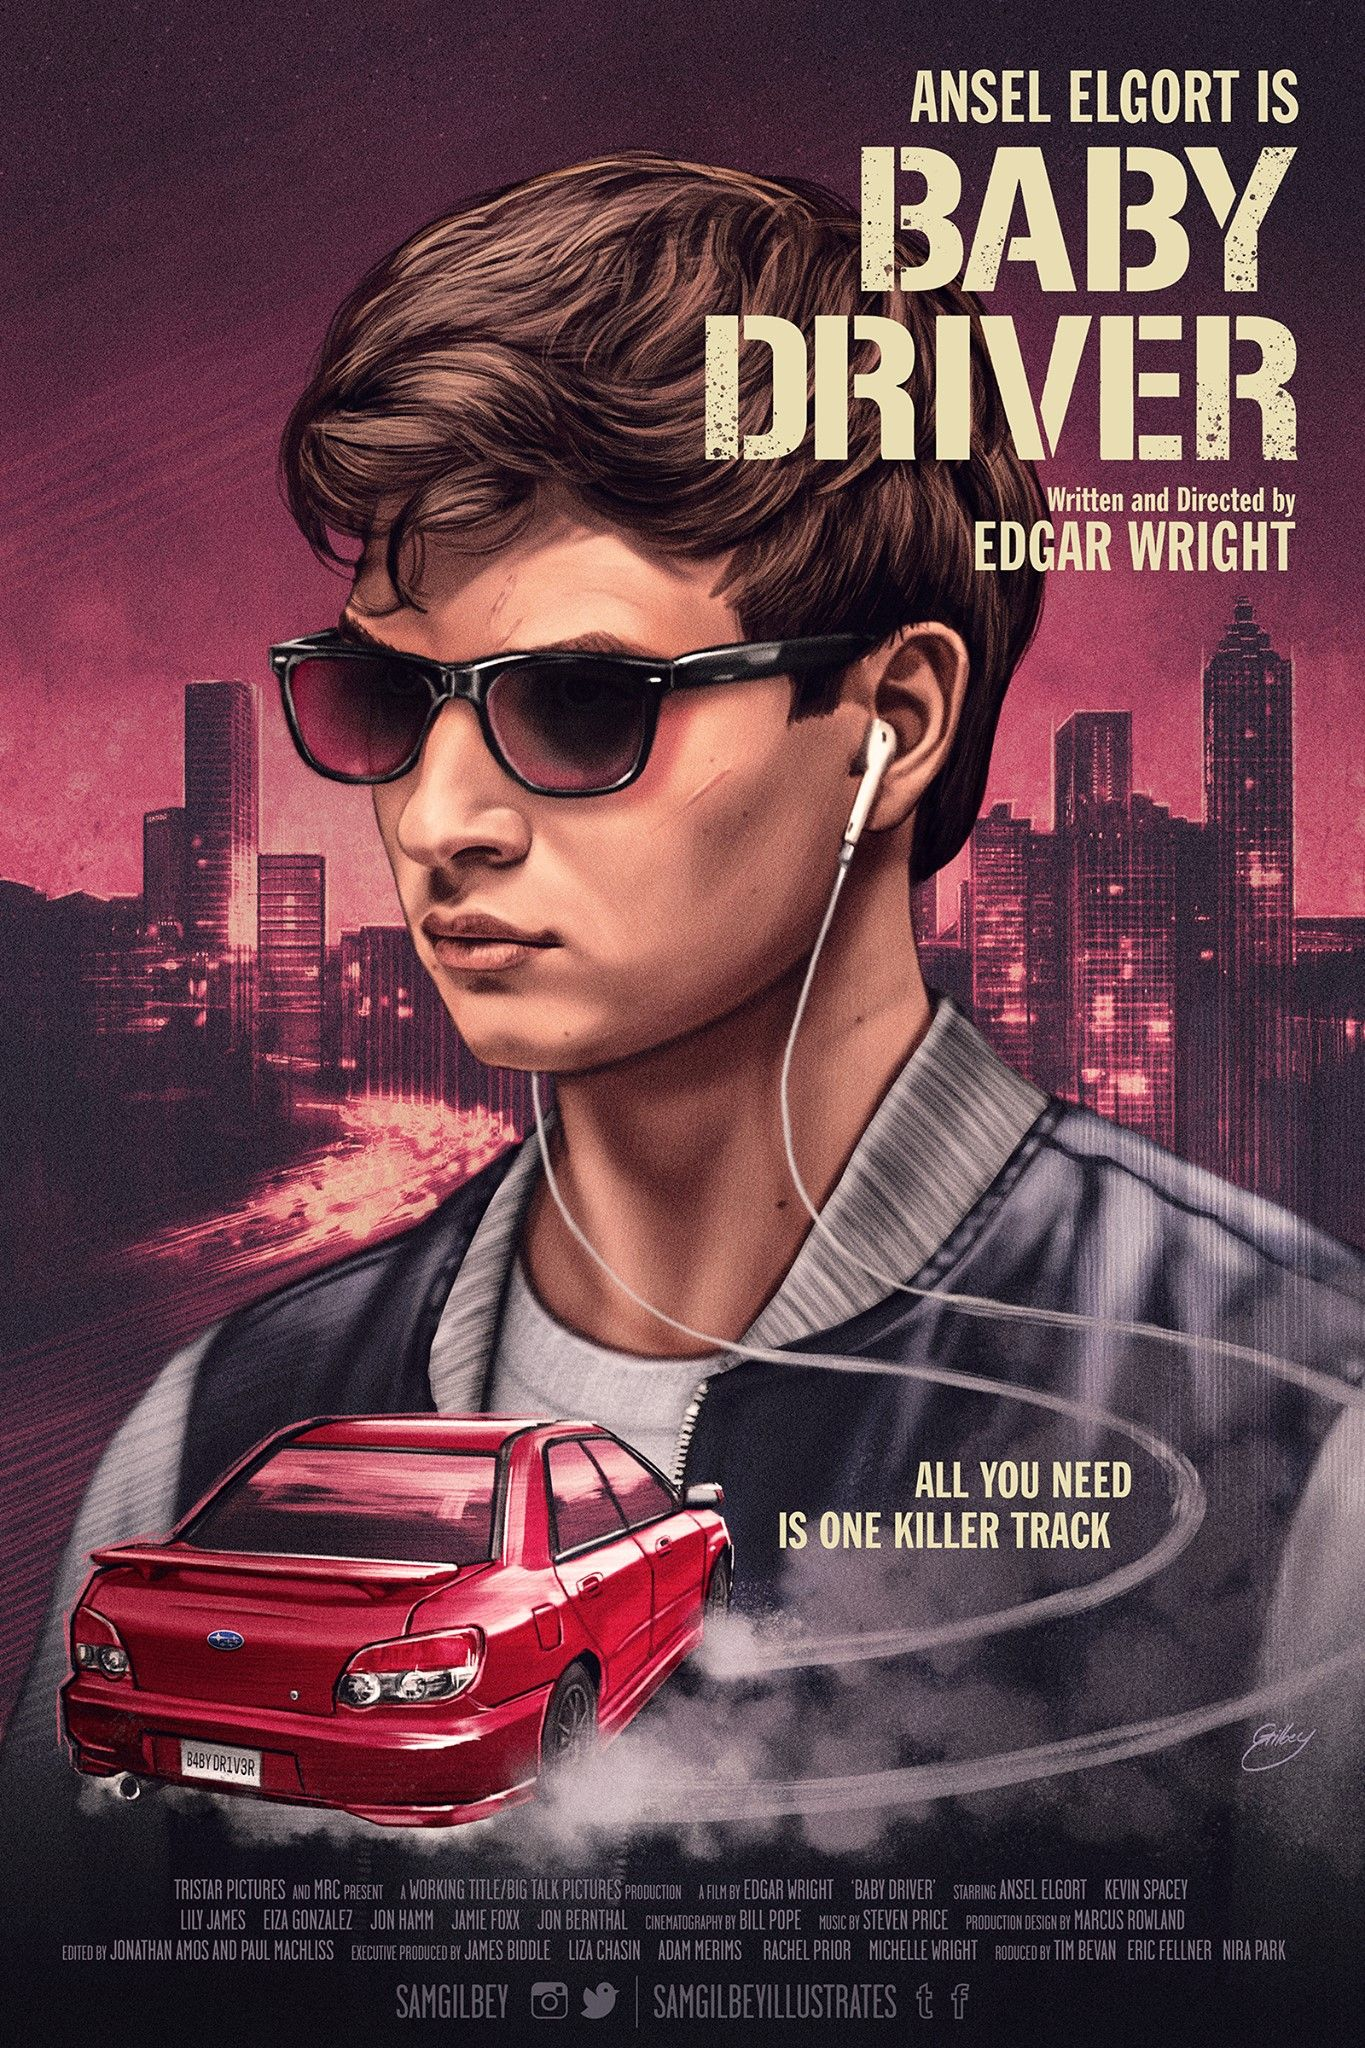 Baby Driver Movie Poster By Sam Gilbey Awesome Posters In Short Circuit 27x40 1986